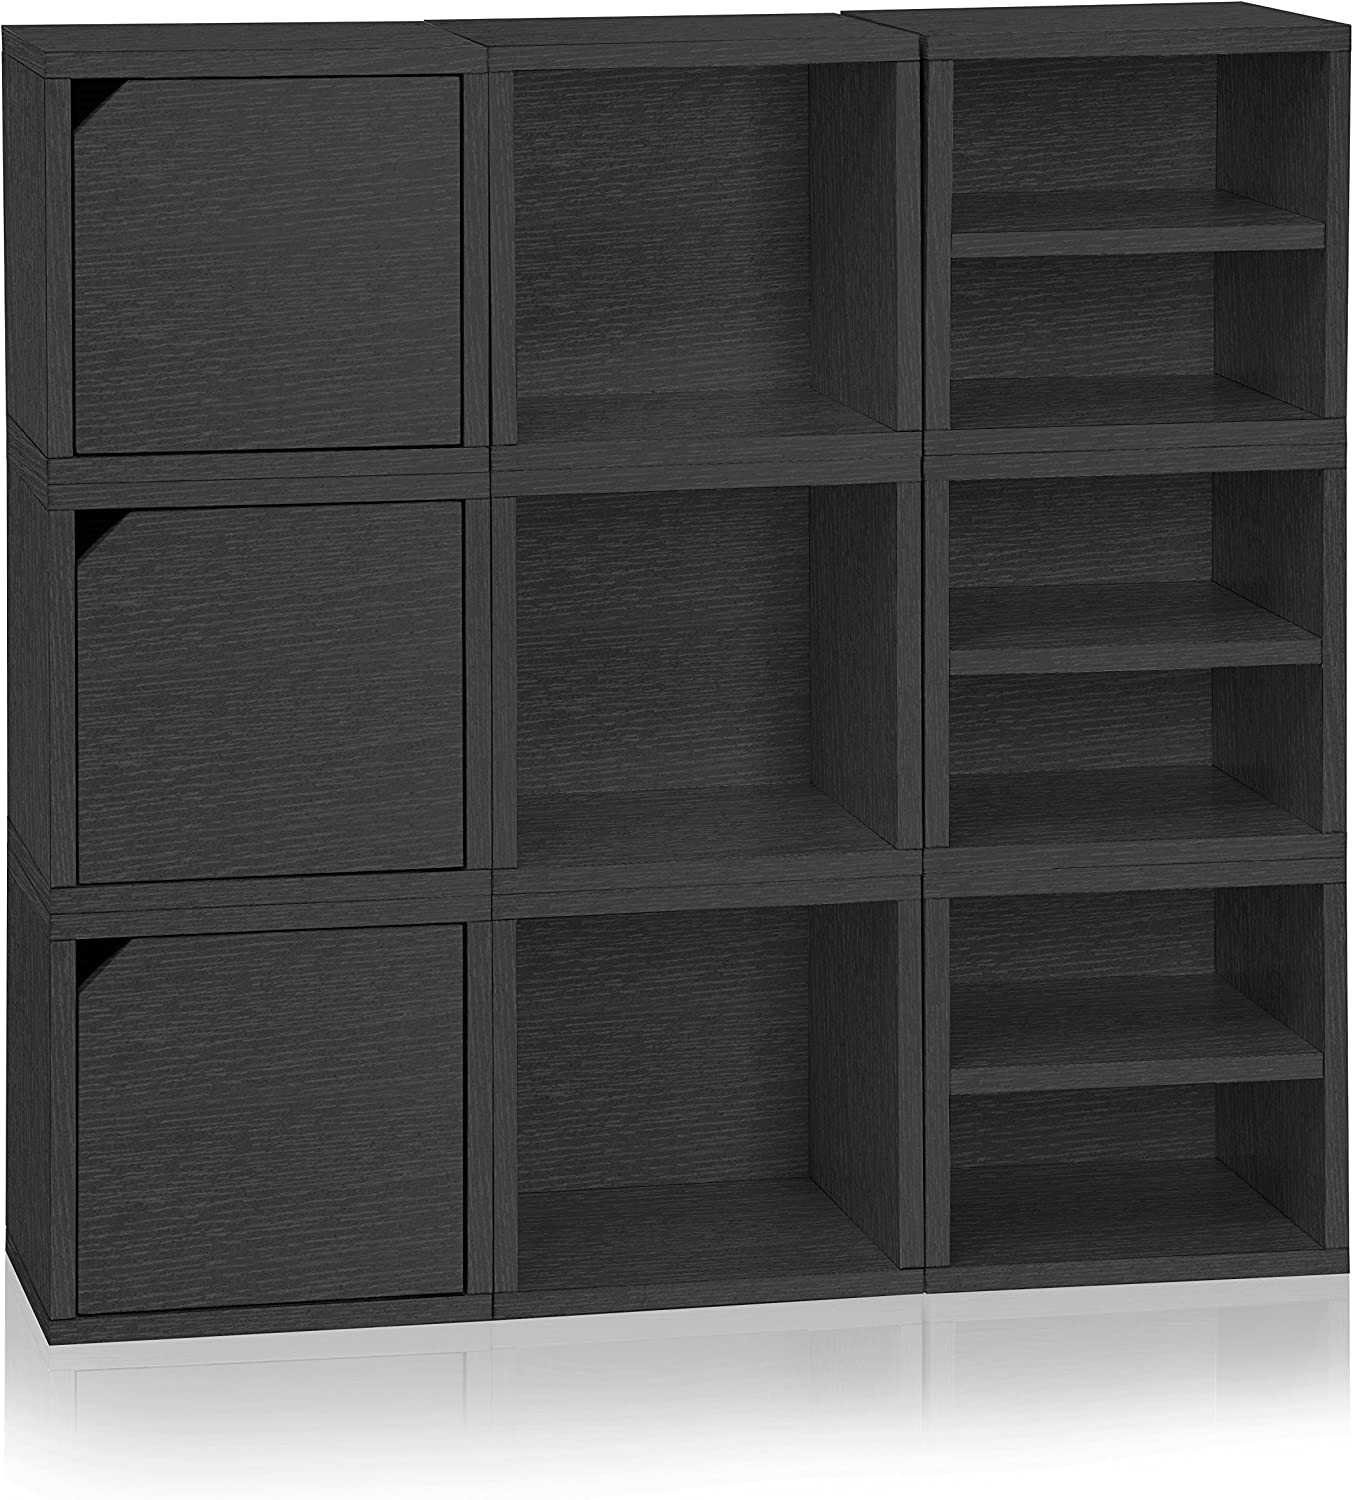 Way Basics 9 Modular 3-in-1 Shelf Connect Cube Storage System, Black Wood Grain (Tool-Free Assembly and Uniquely Crafted from Sustainable Non Toxic zBoard paperboard)